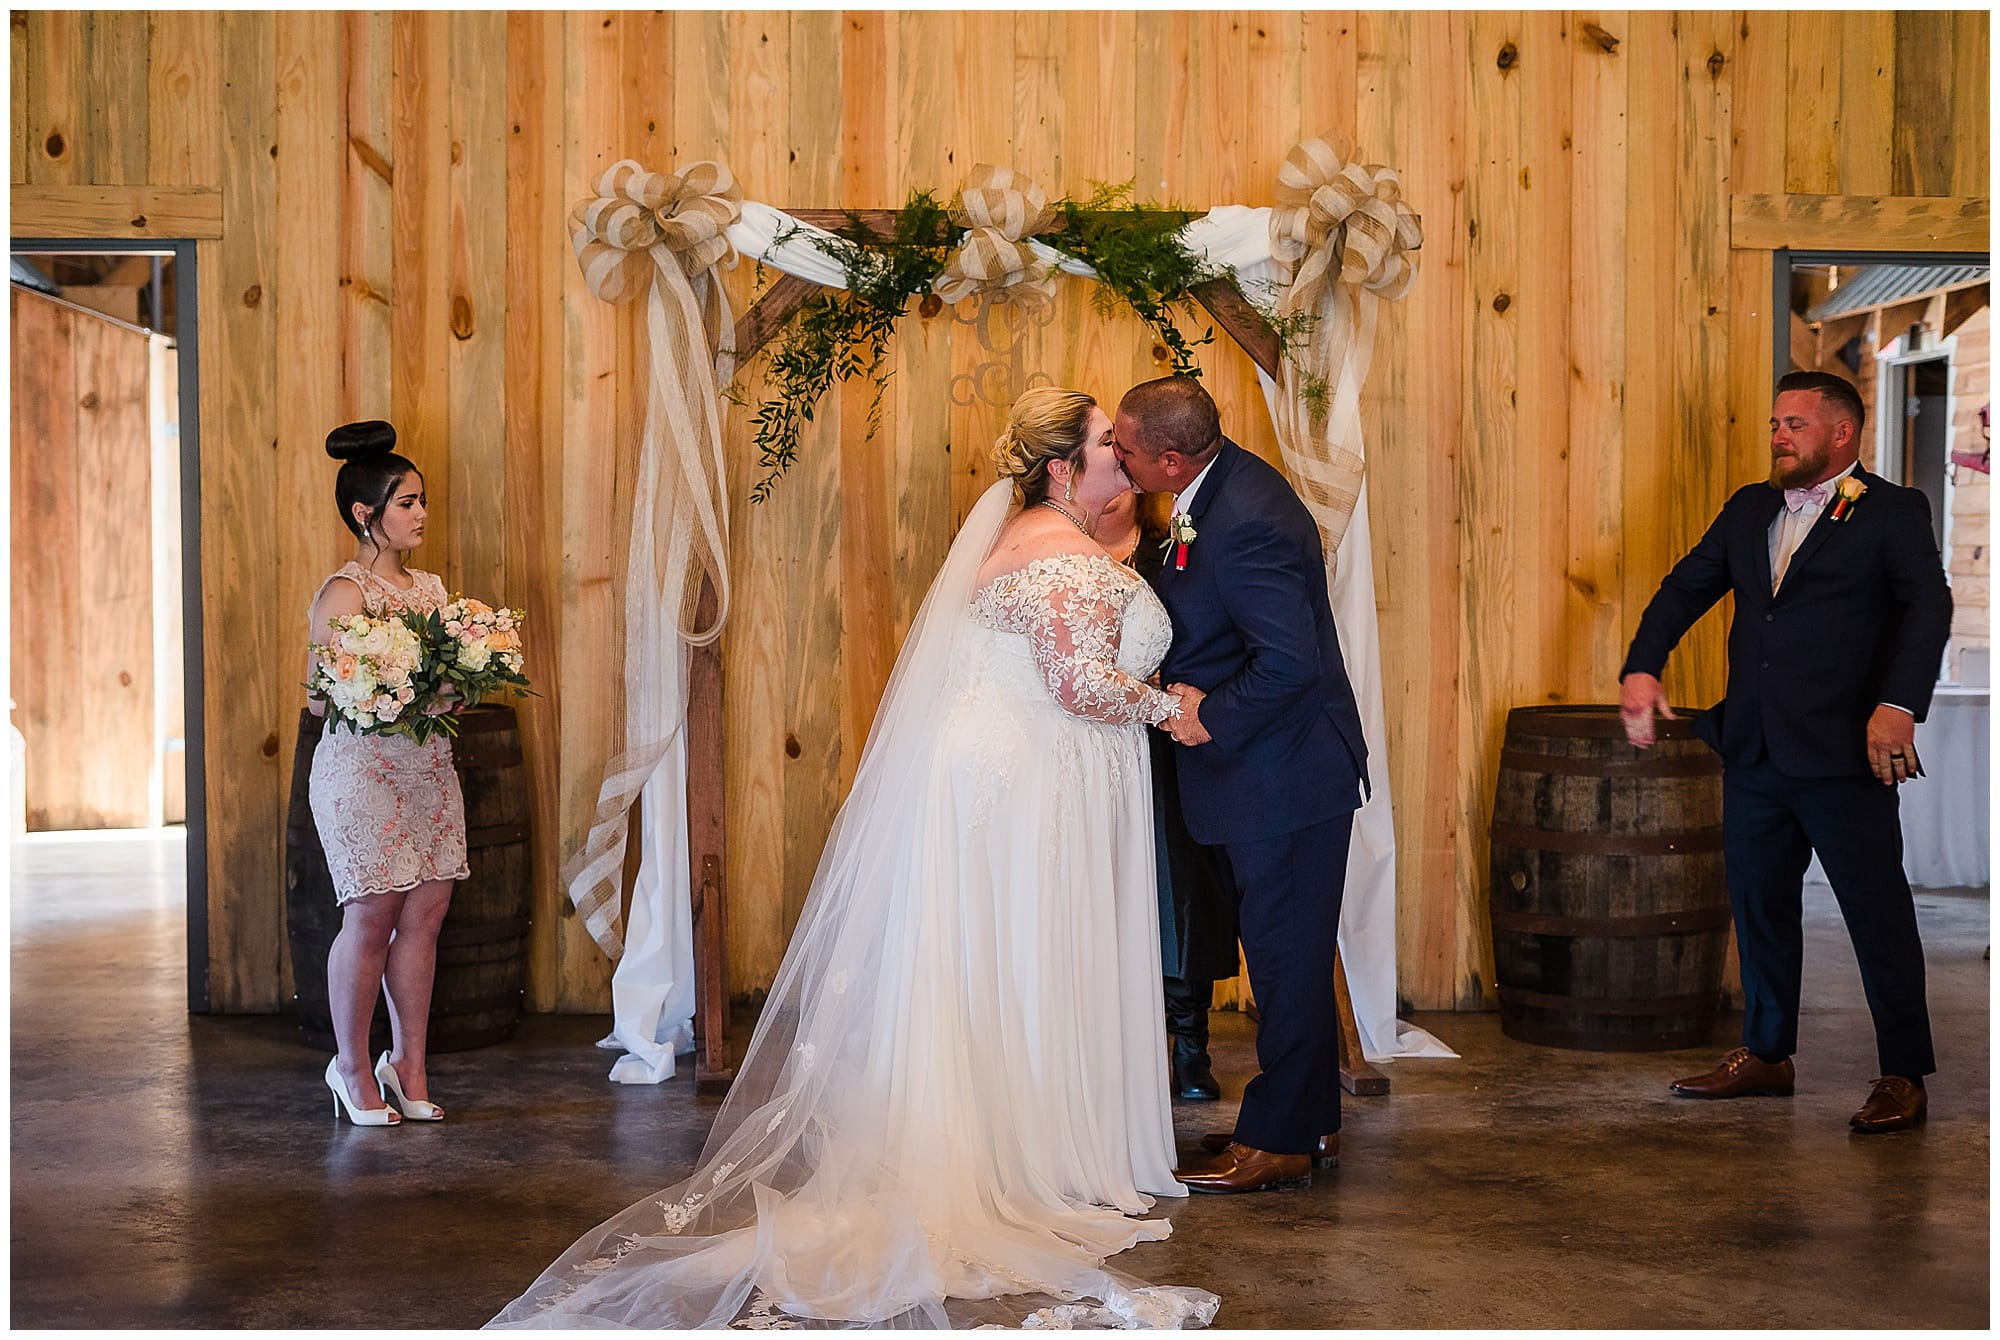 The Barn at TH Farm wedding ceremony fist kiss